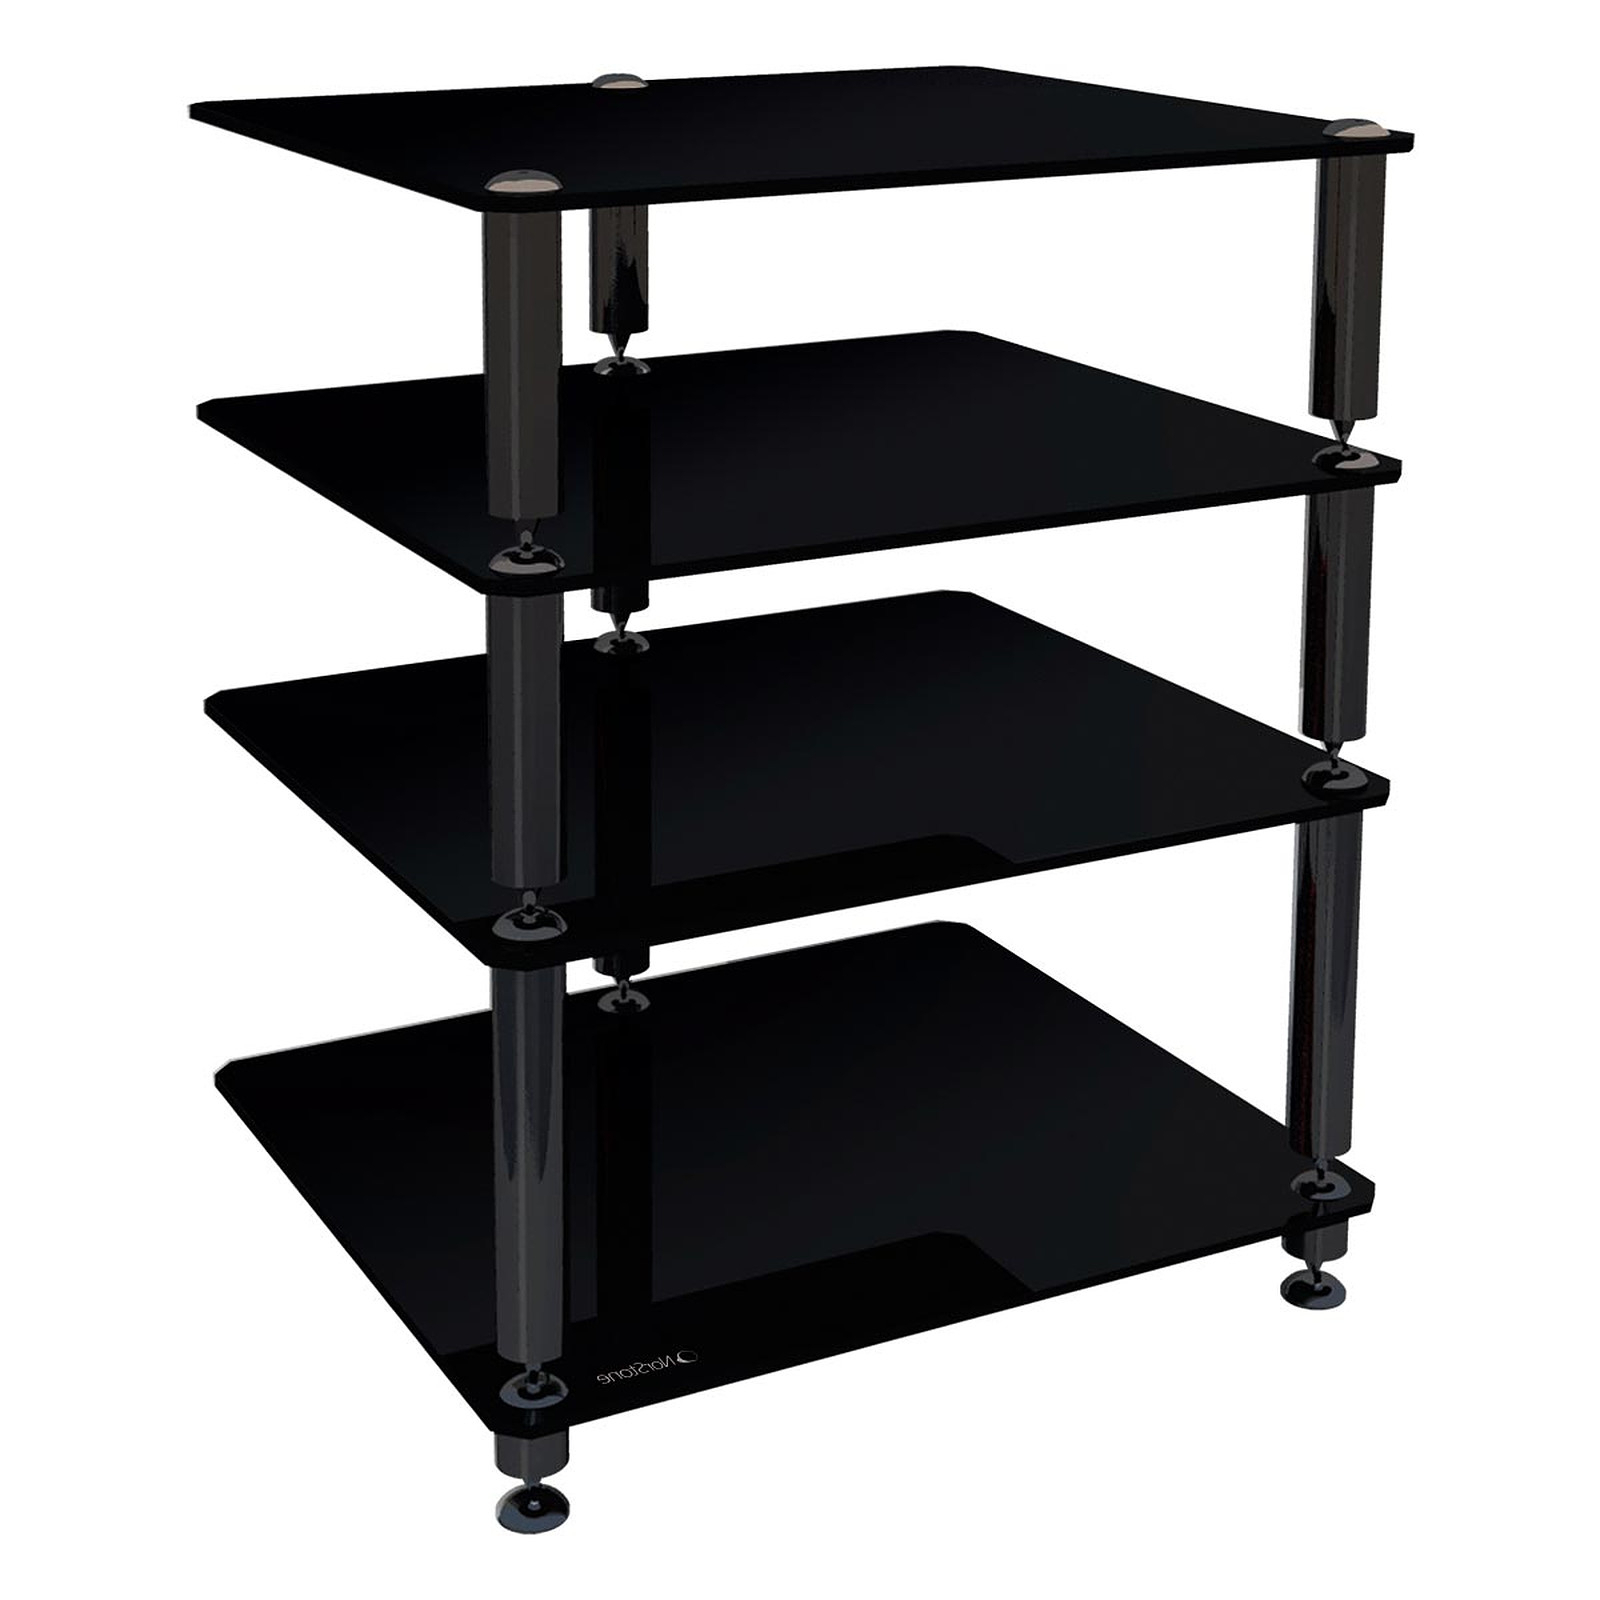 Norstone Bergen 2 – Meuble Tv Norstone Sur Ldlc With Latest Bergen Tv Stands (View 25 of 25)